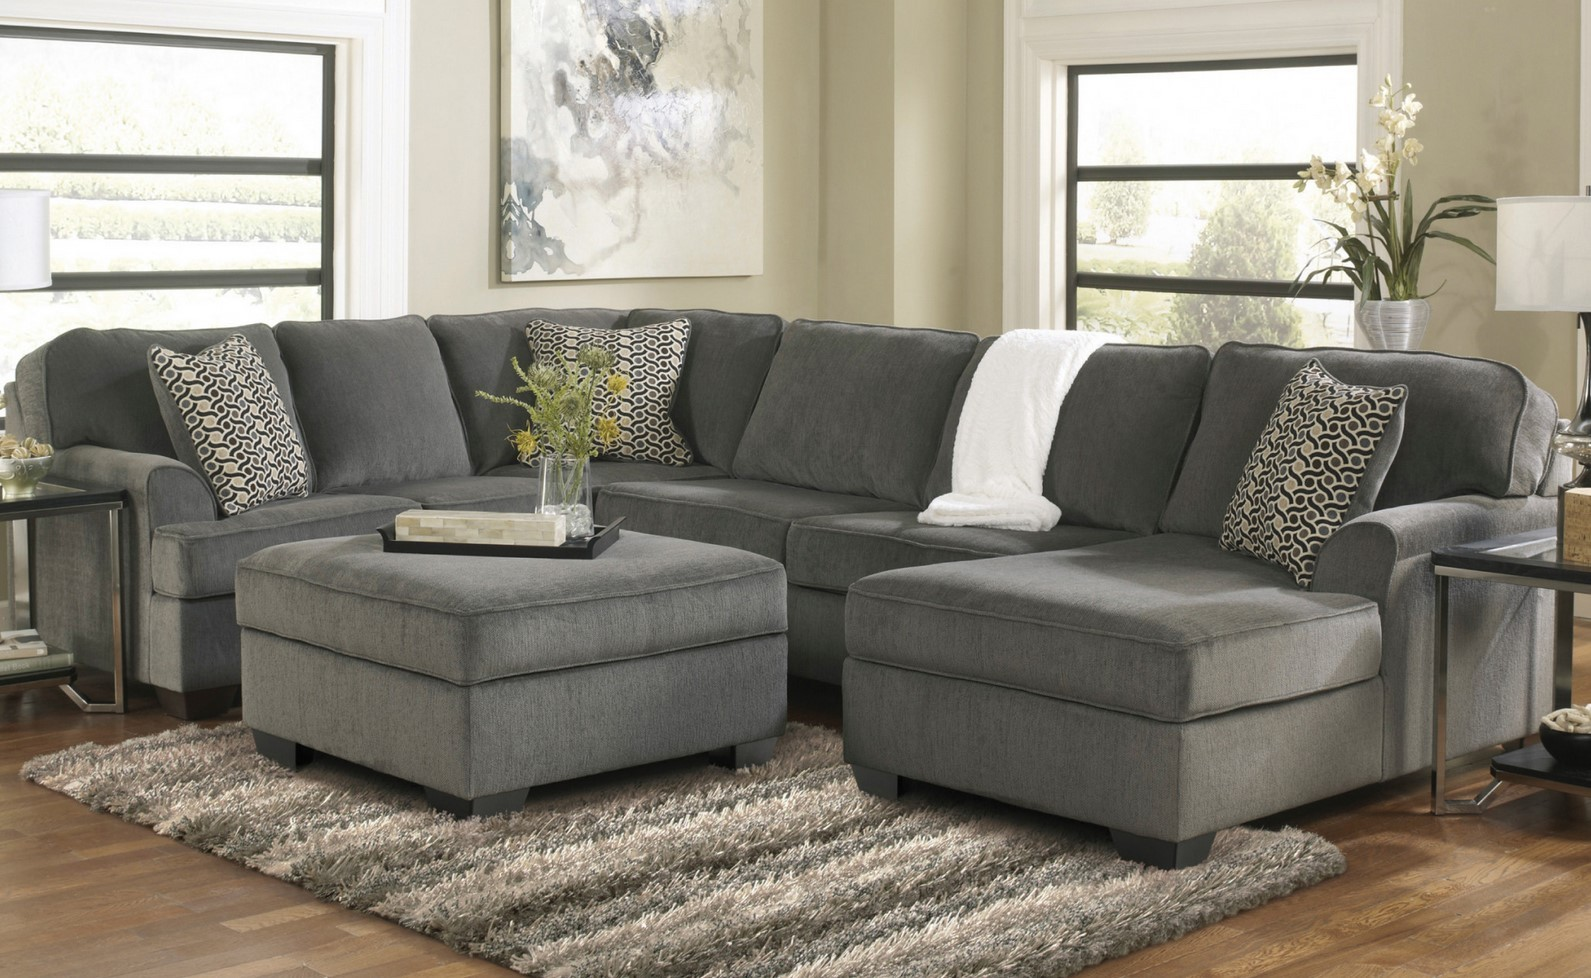 Living Room Furniture Sales Near Me